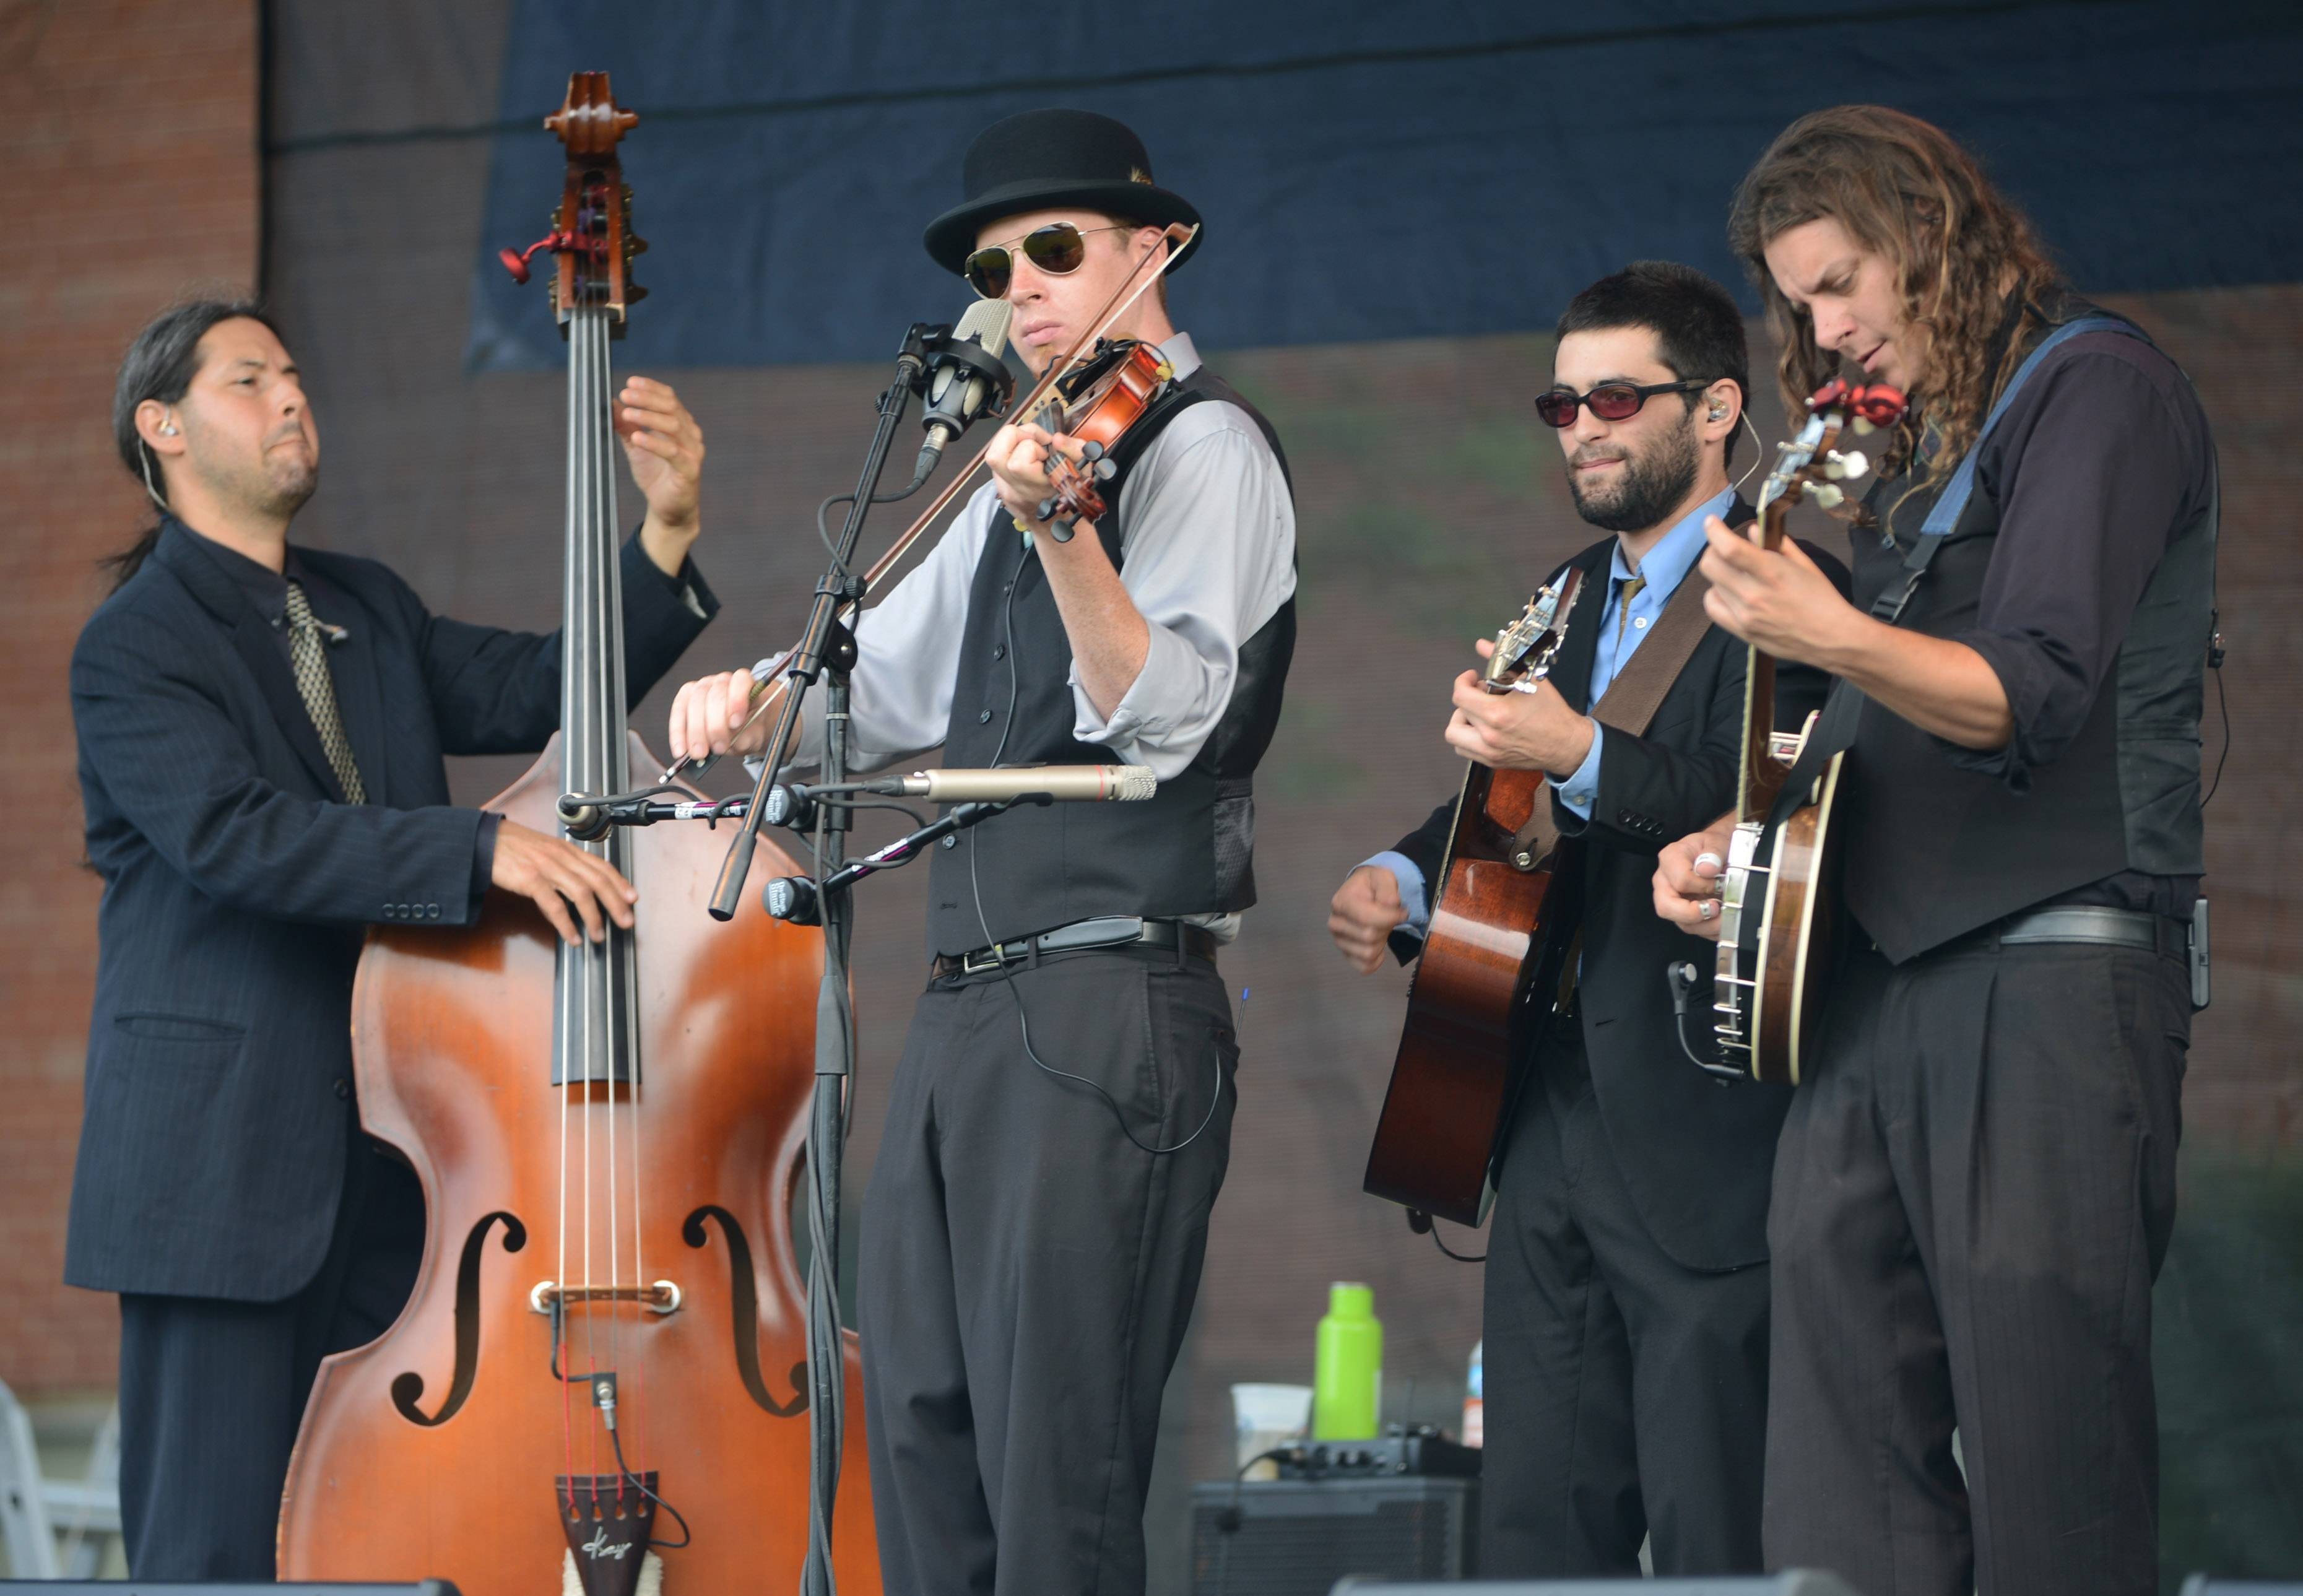 Members of The Henhouse Prowlers of Chicago played during last year's Mundelein Community Days.